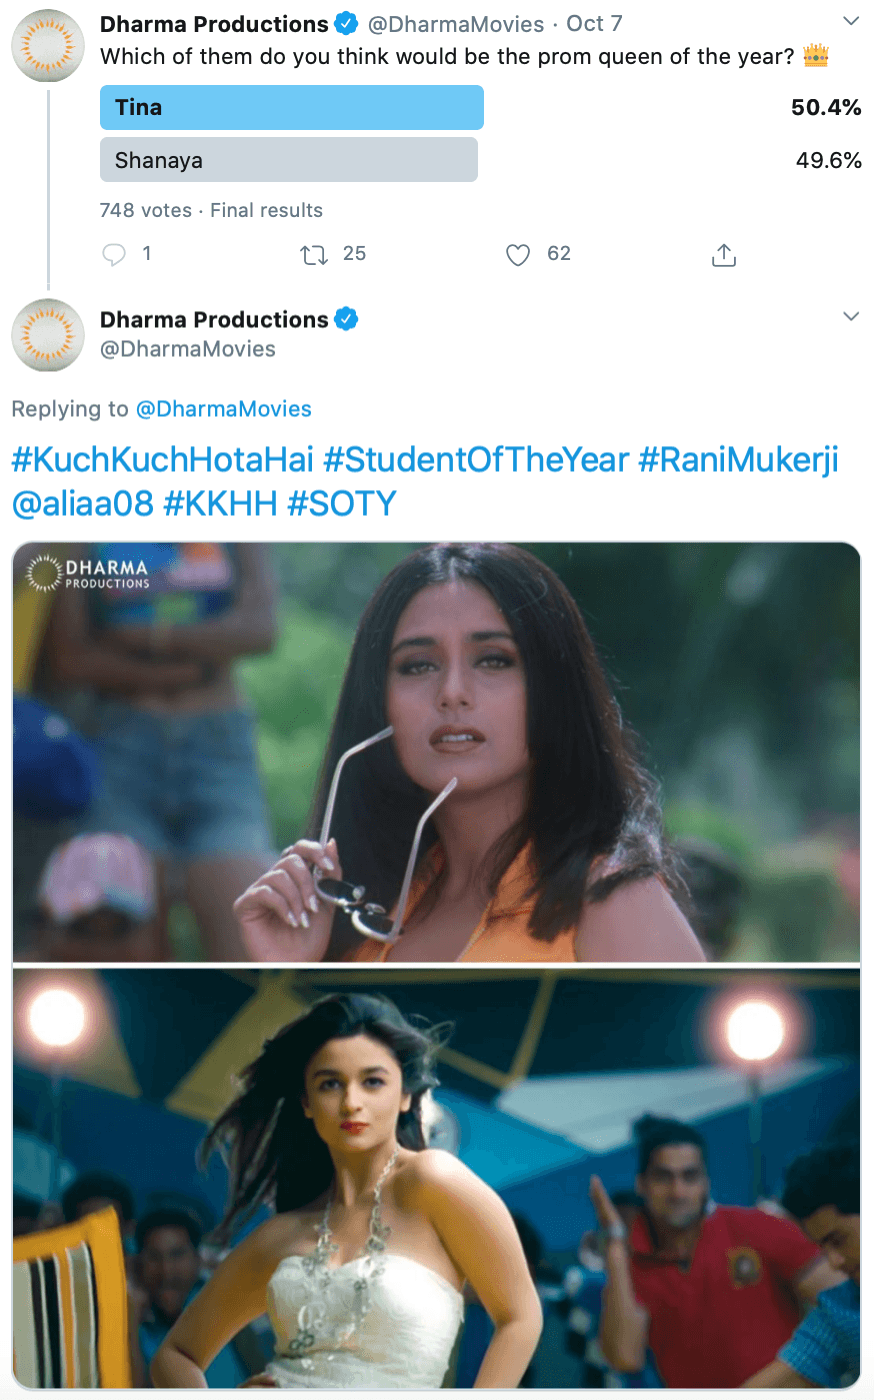 Twitter poll by @DharmaMovies